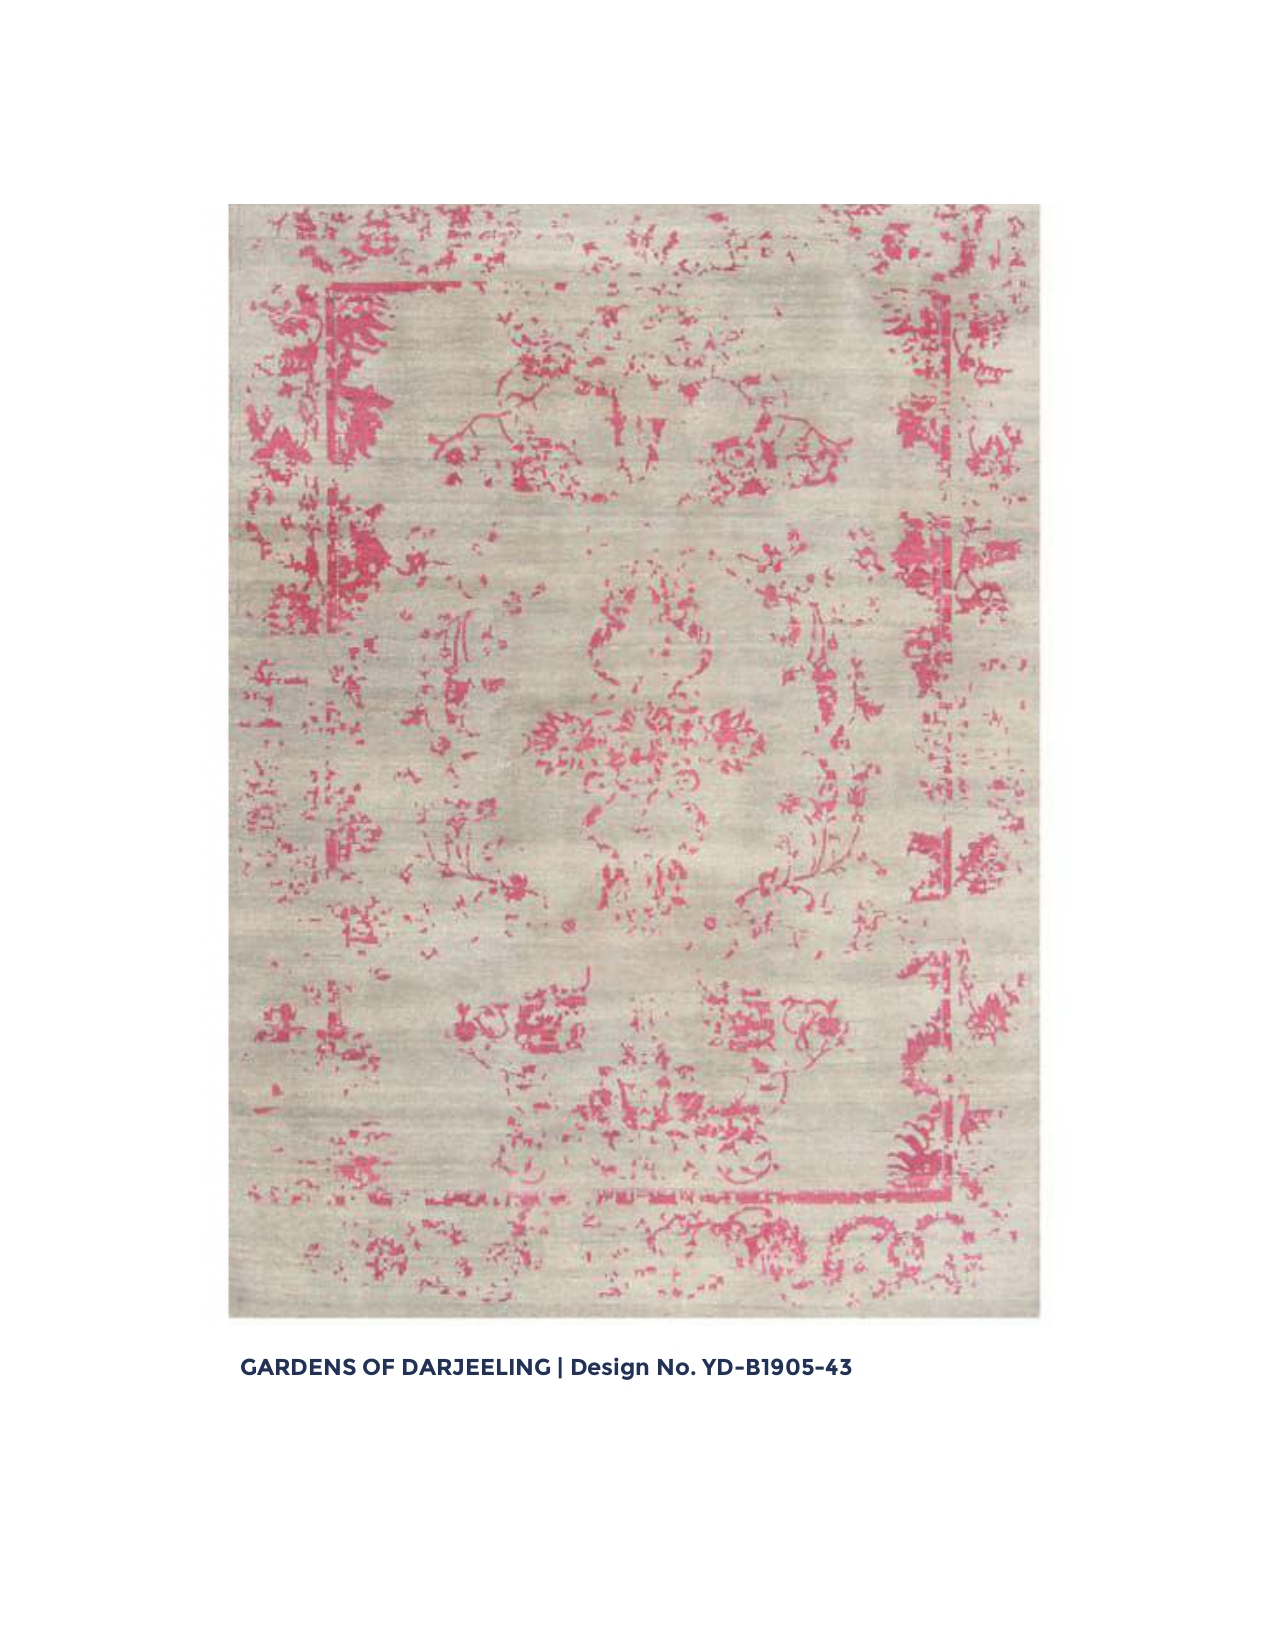 Hand_Knotted_CC_1905_47.jpg